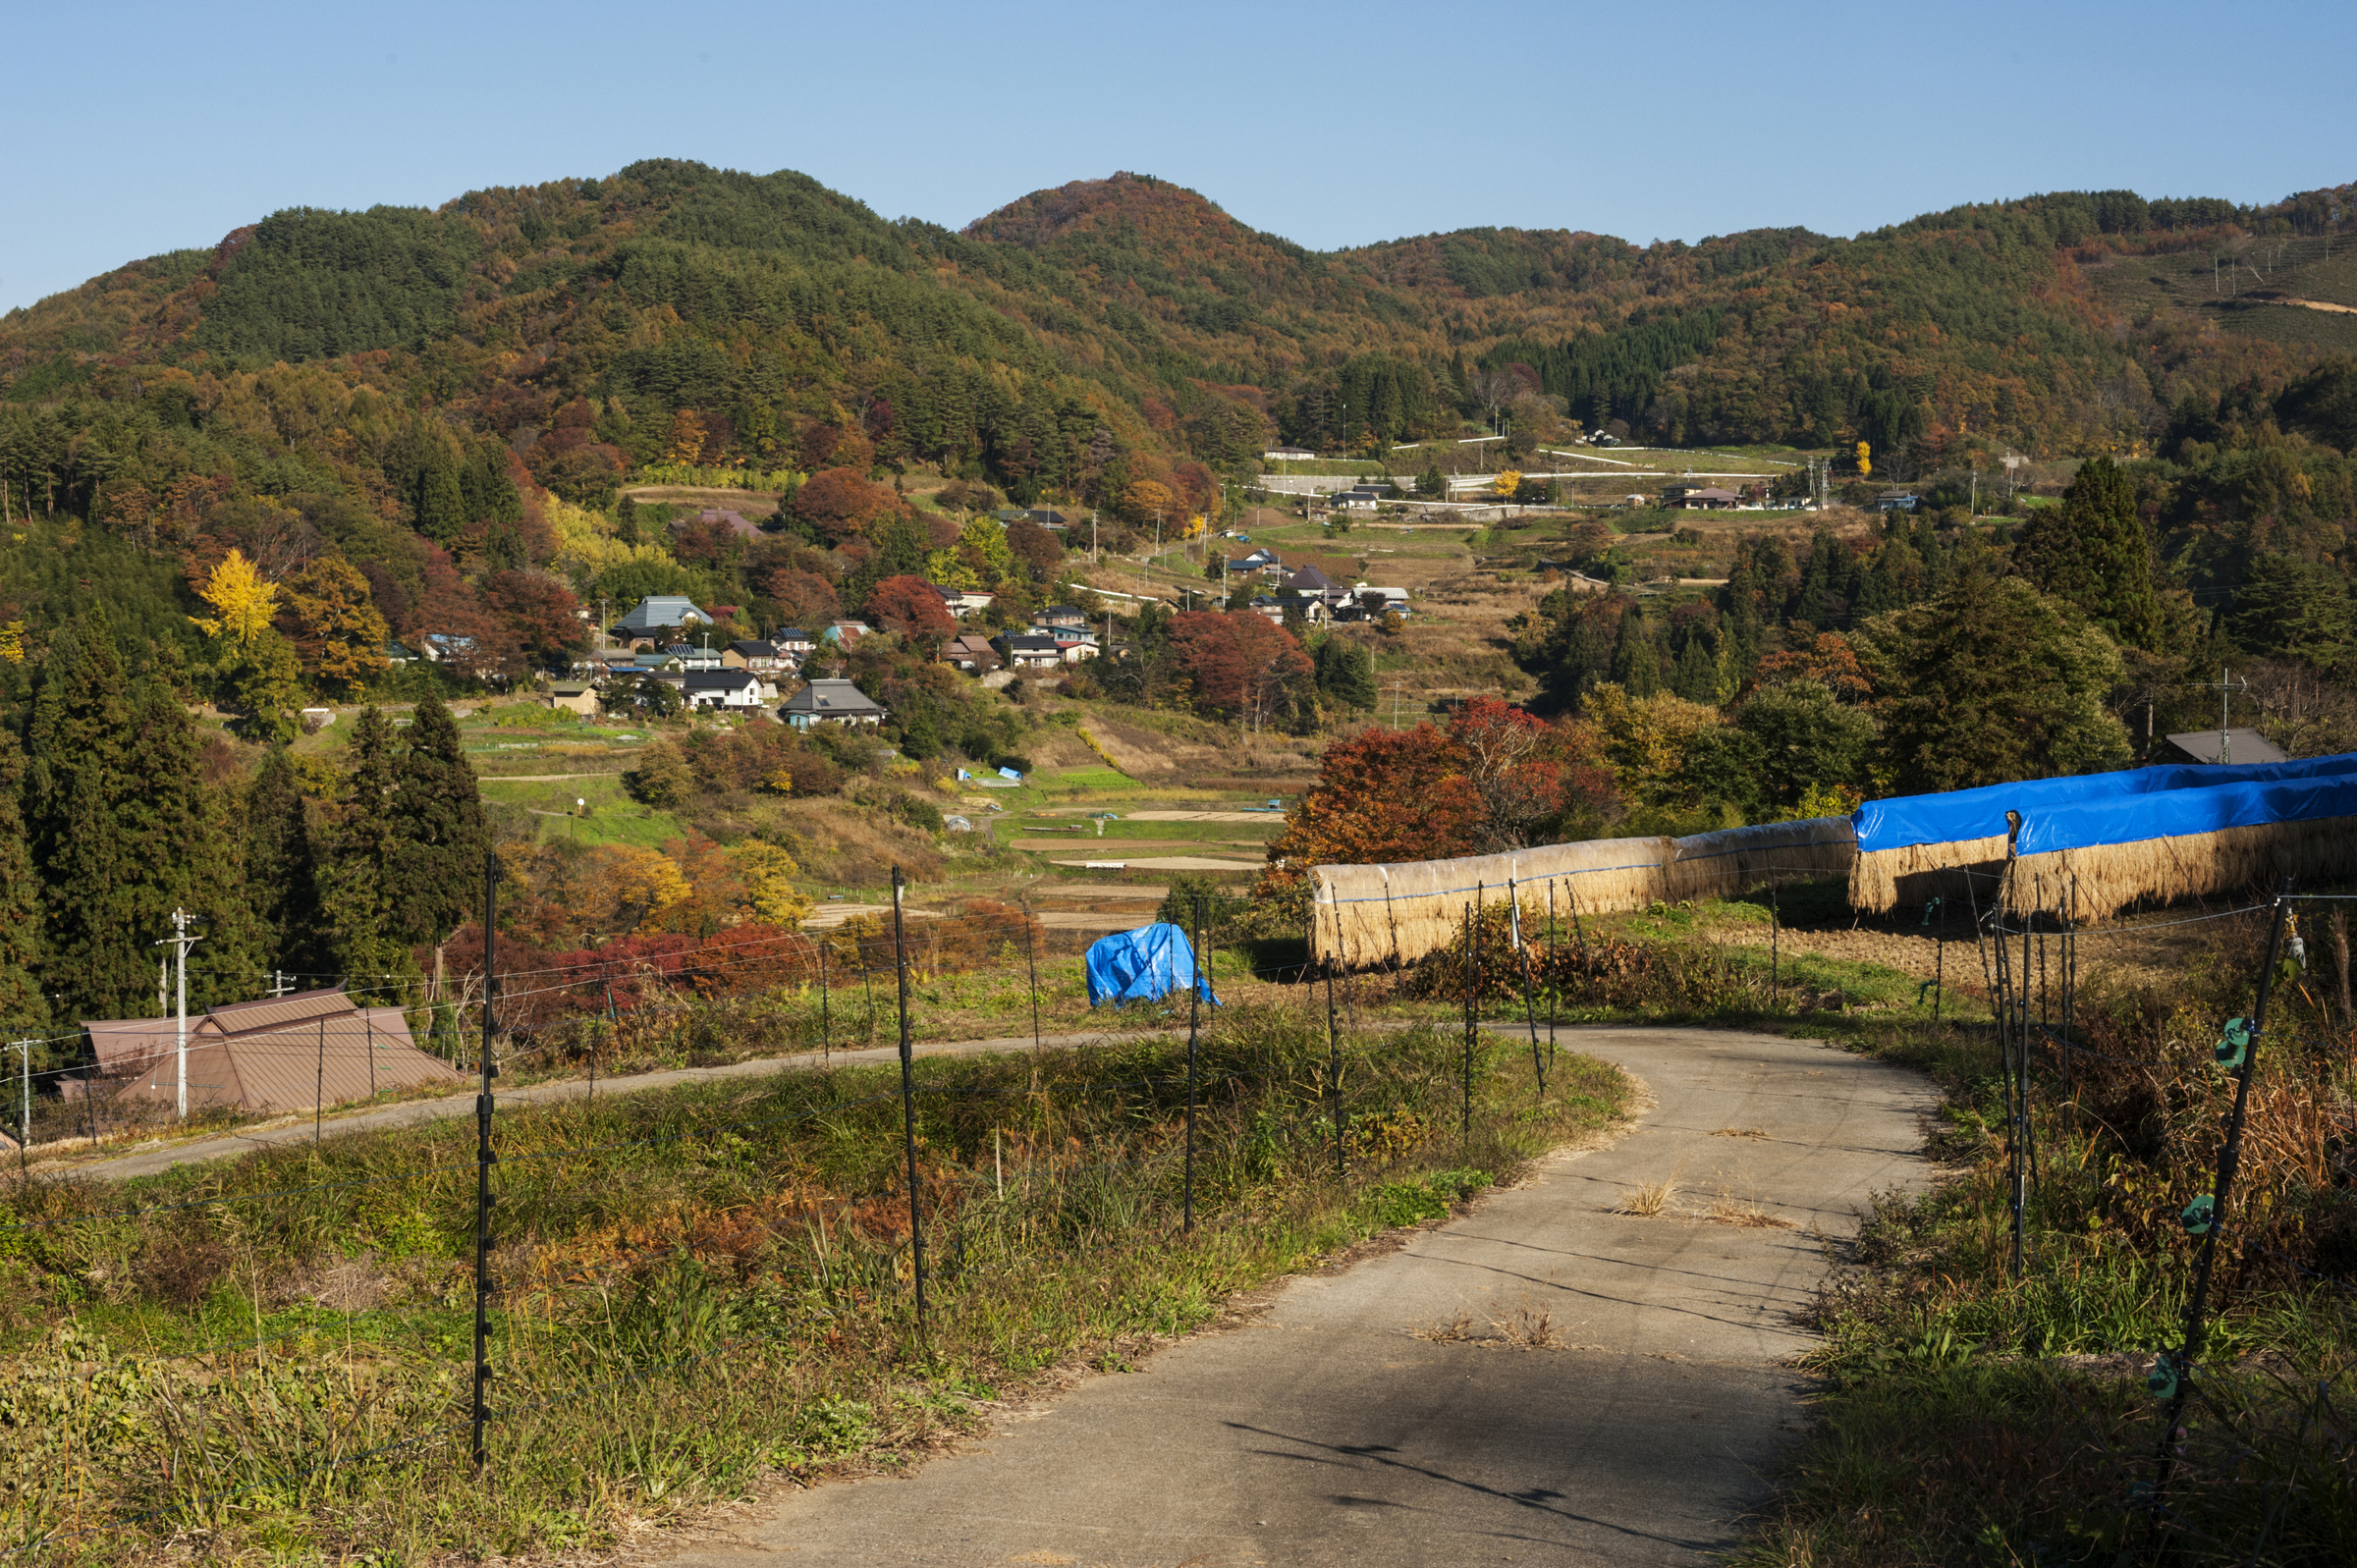 Looking across the valley at the hamlet of Yonedawa from fields in Keishi.